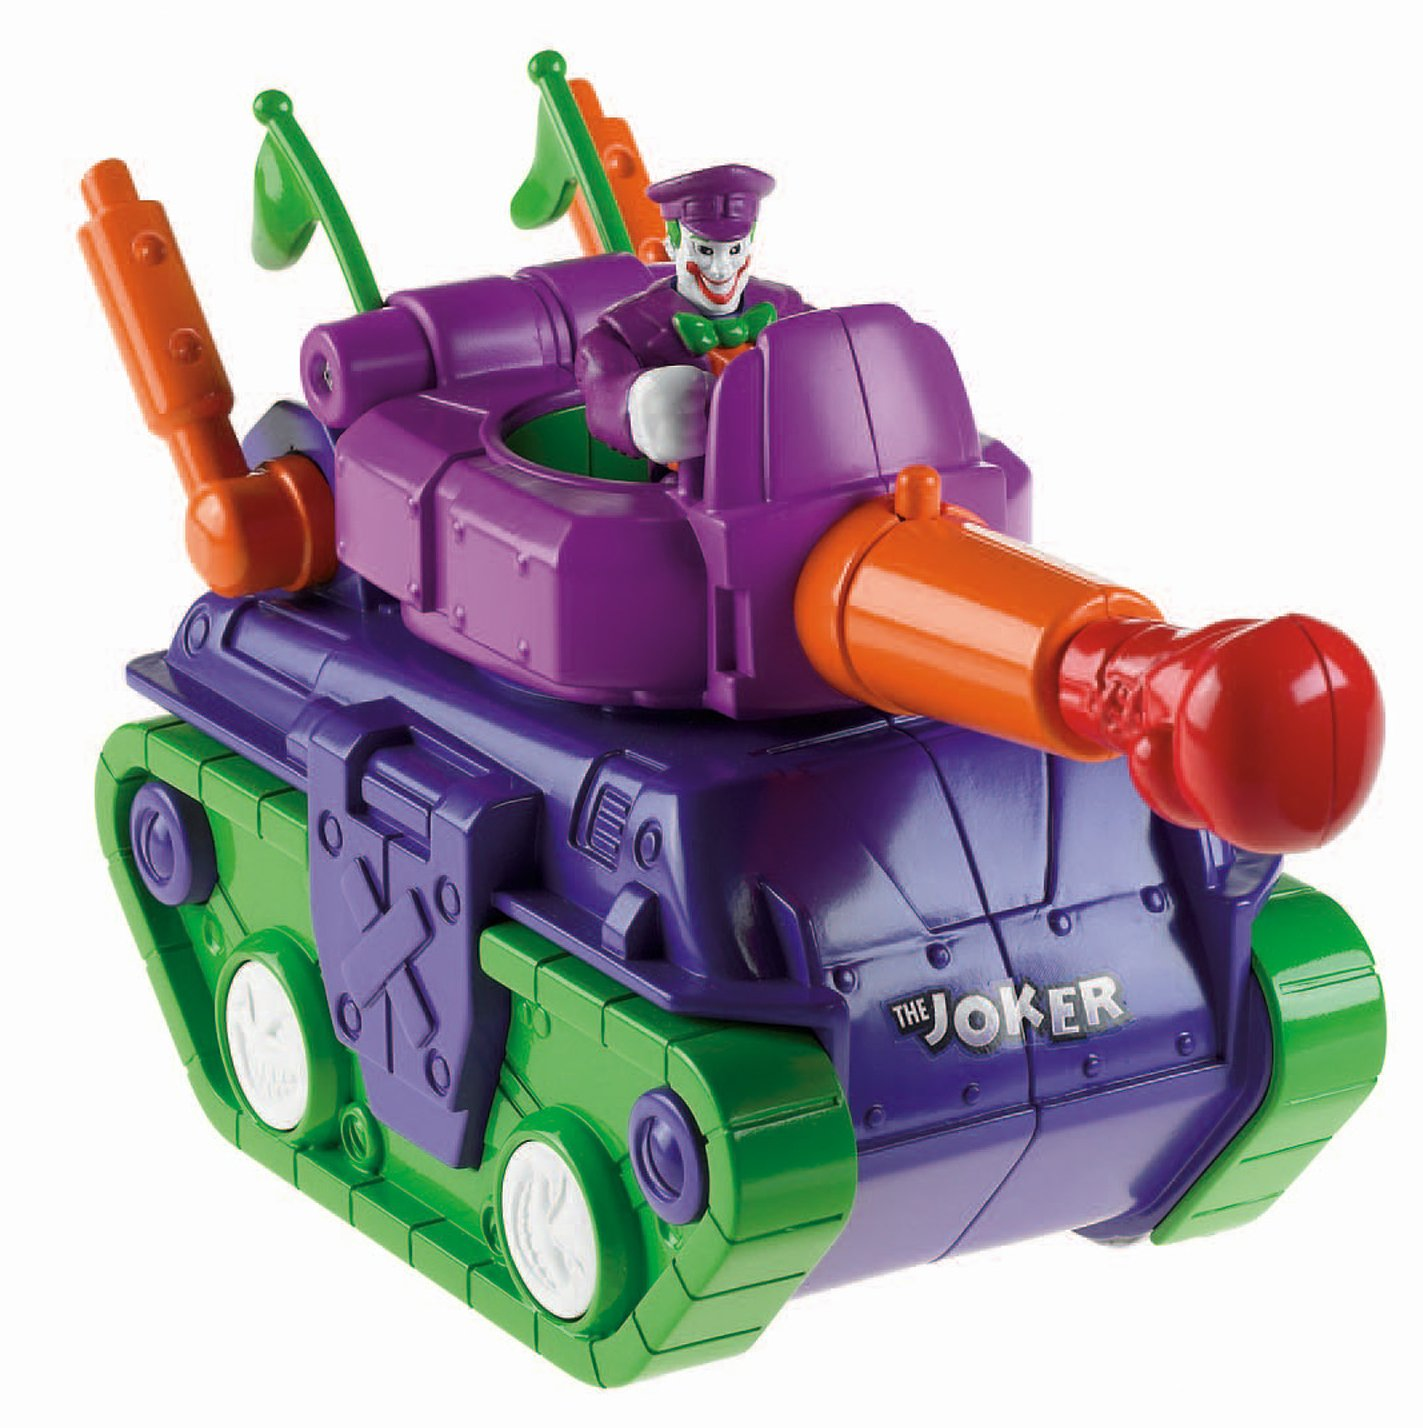 Fisher-Price Imaginext DC Super Friends, Joker Tank by Fisher-Price (Image #7)